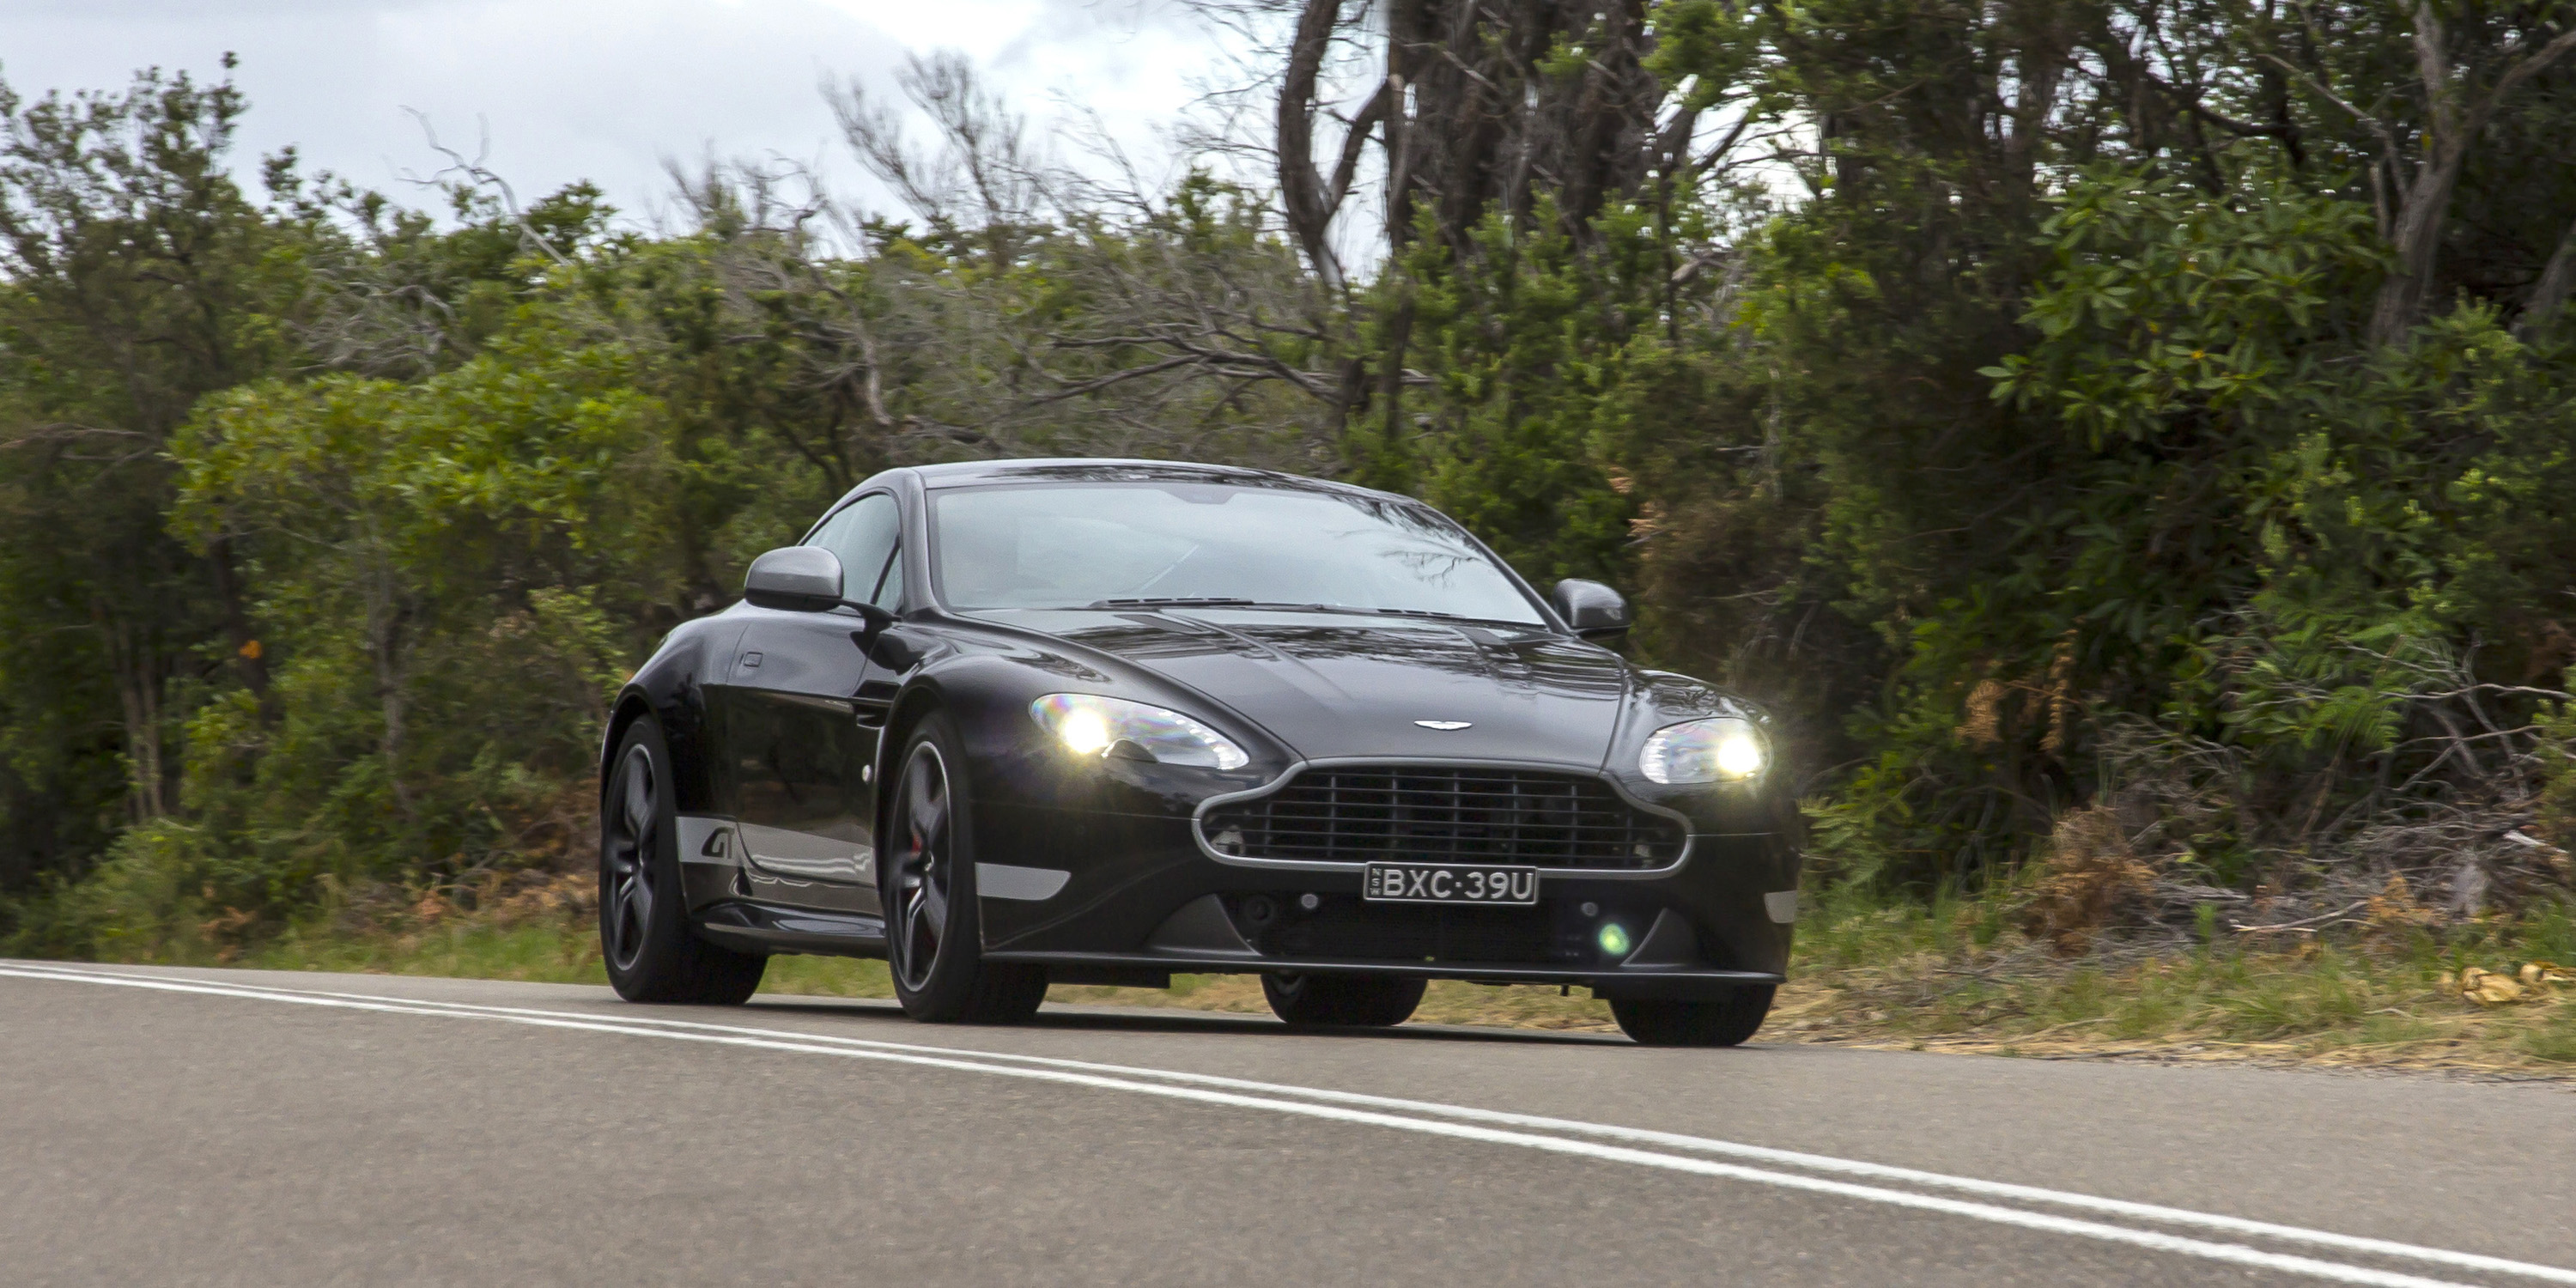 2016 Aston Martin Vantage Gt Test Drive (Photo 24 of 25)